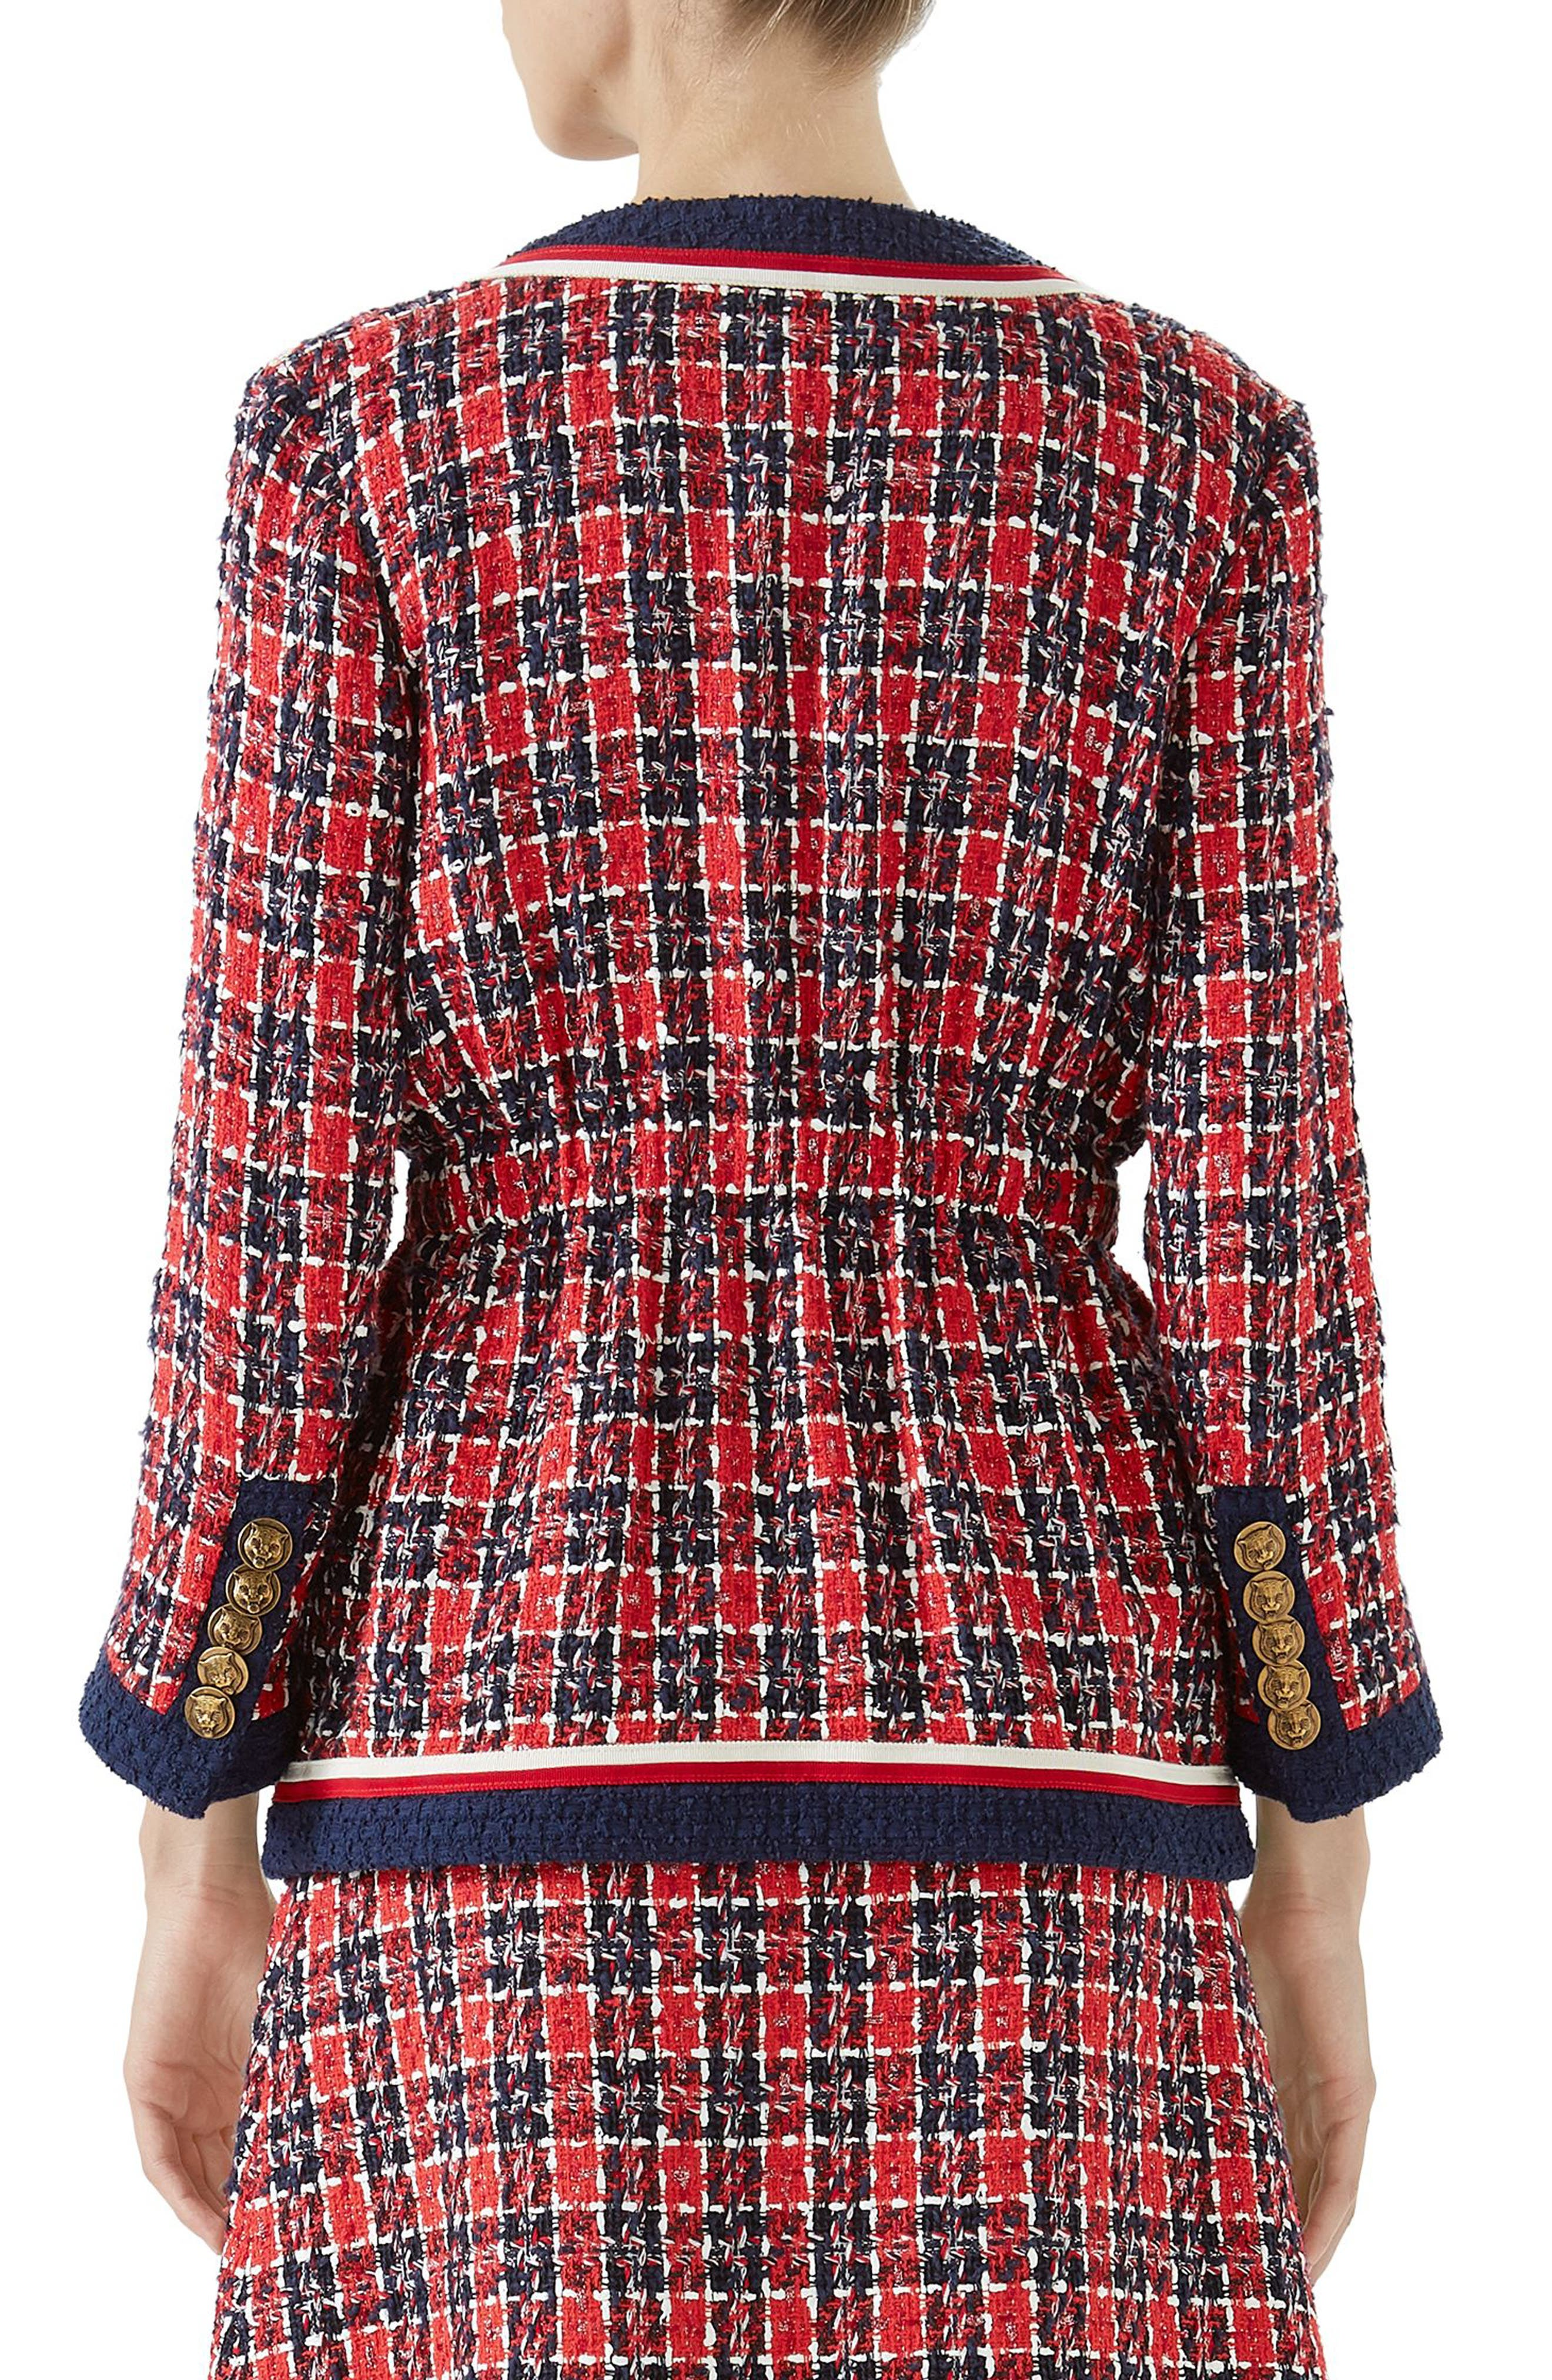 Cinch Waist Tweed Jacket,                             Alternate thumbnail 2, color,                             ROYAL BLUE/ RED